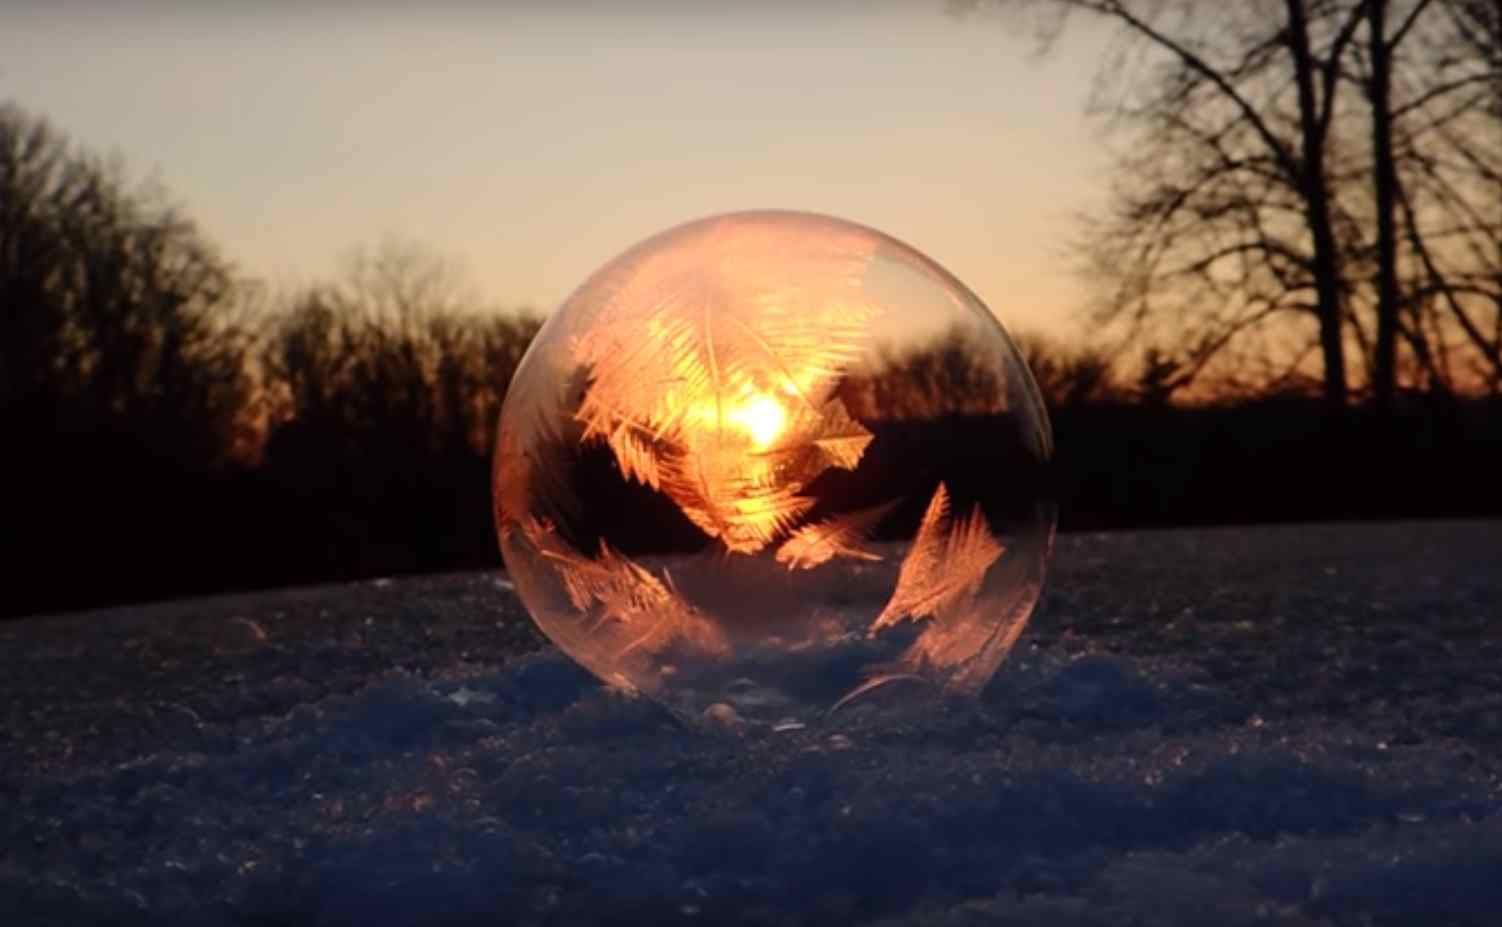 Watching Soap Bubbles Freeze, Fascinating…